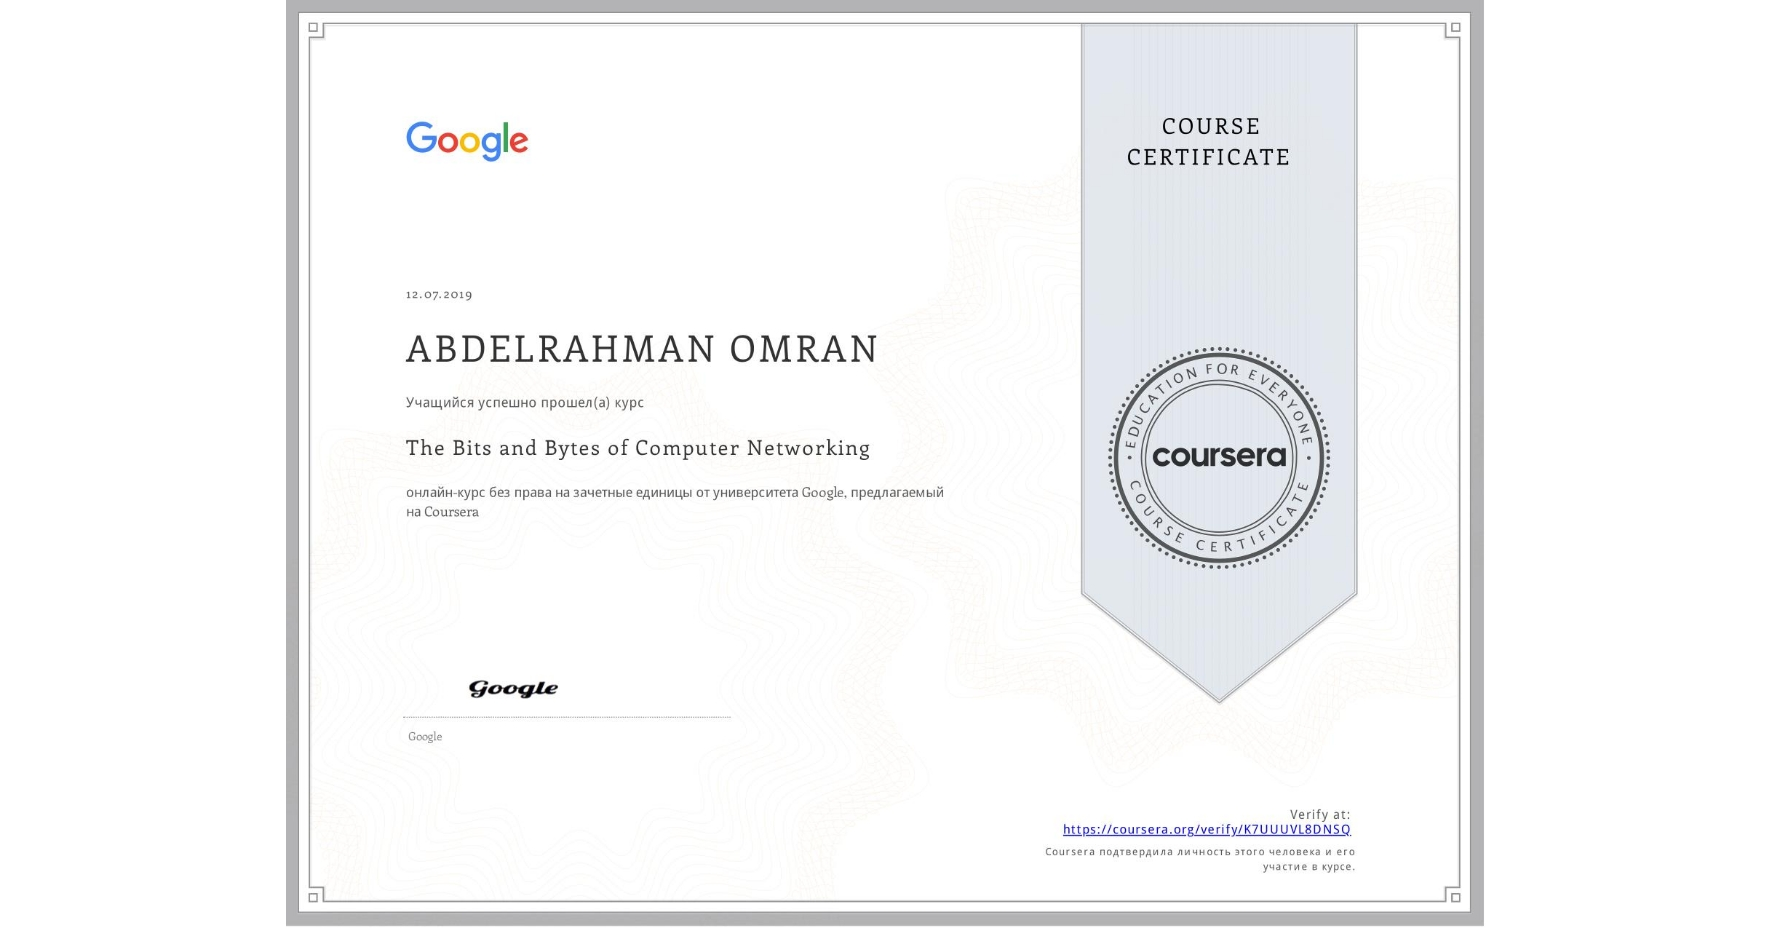 View certificate for ABDELRAHMAN OMRAN, The Bits and Bytes of Computer Networking, an online non-credit course authorized by Google and offered through Coursera